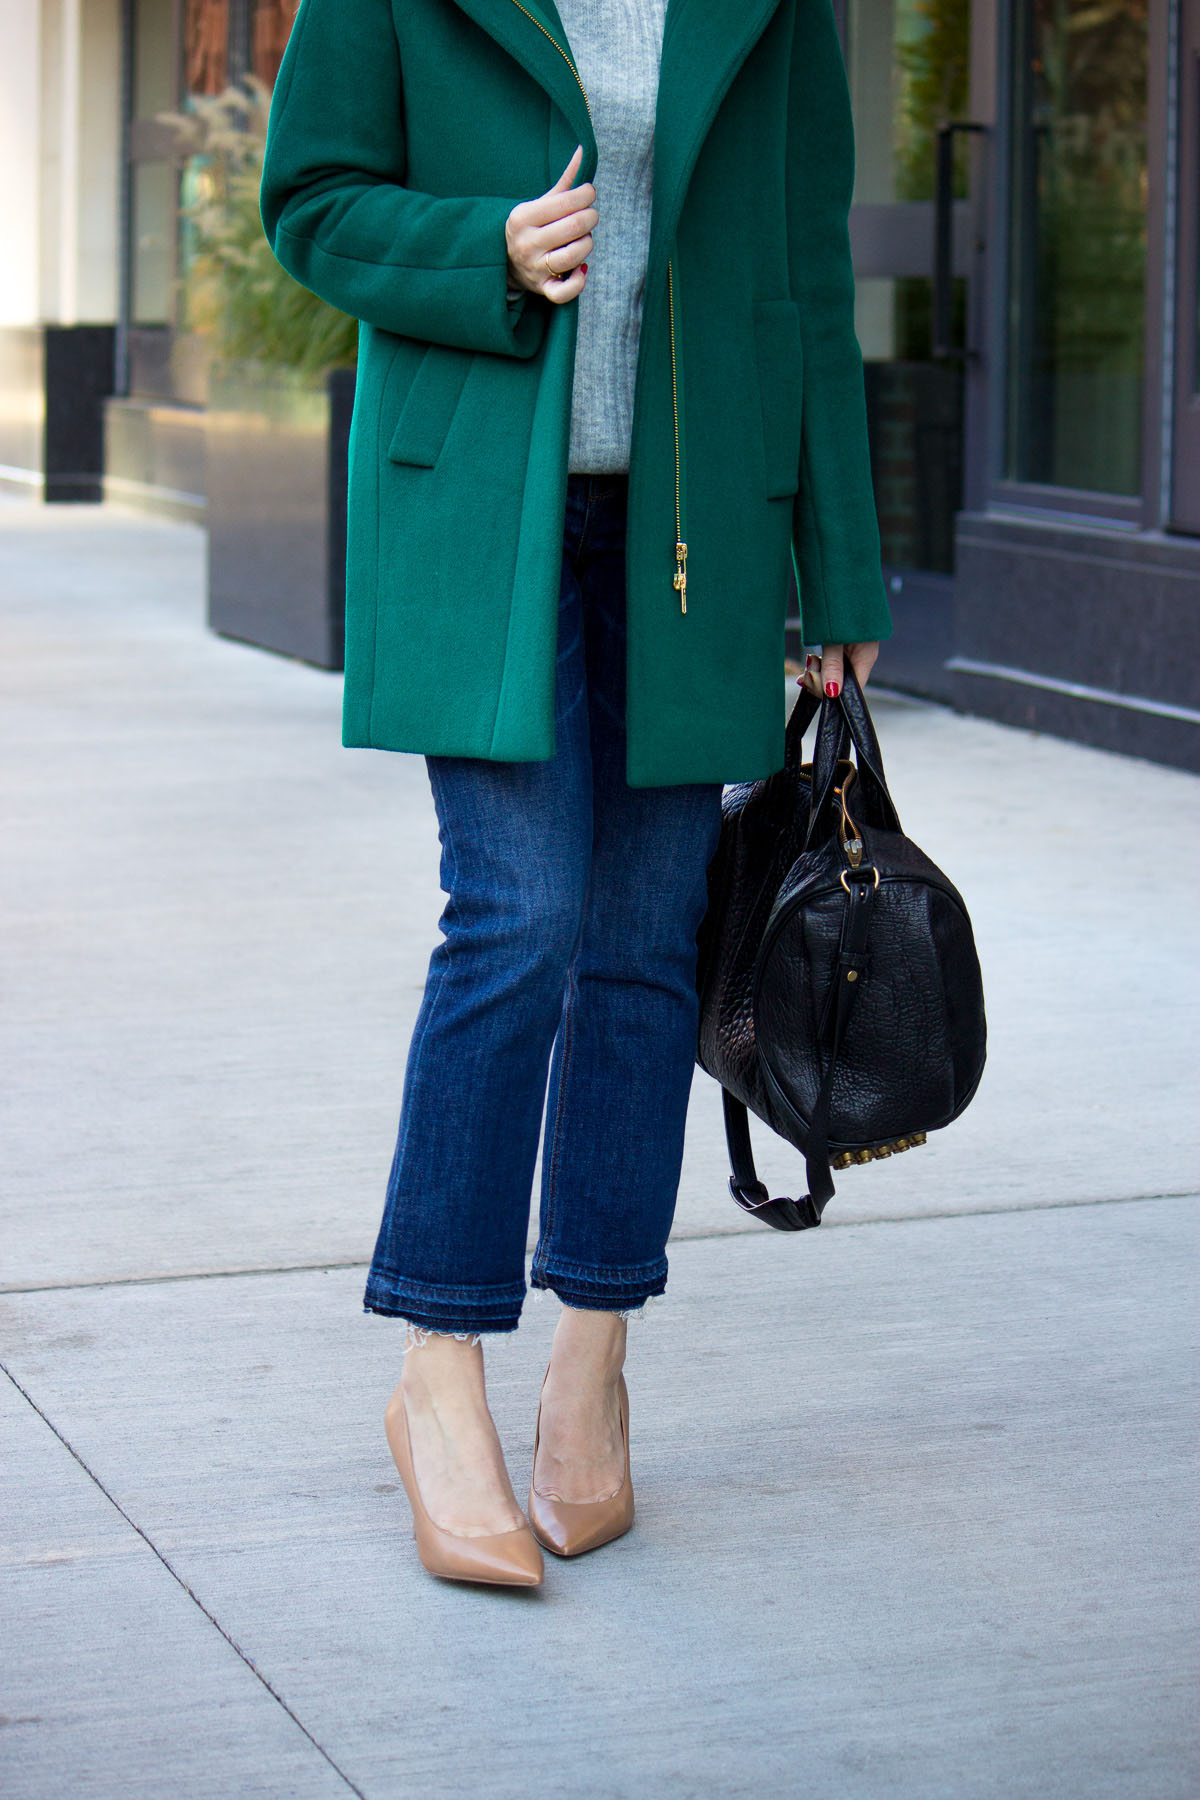 j-crew-green-winter-coat-4